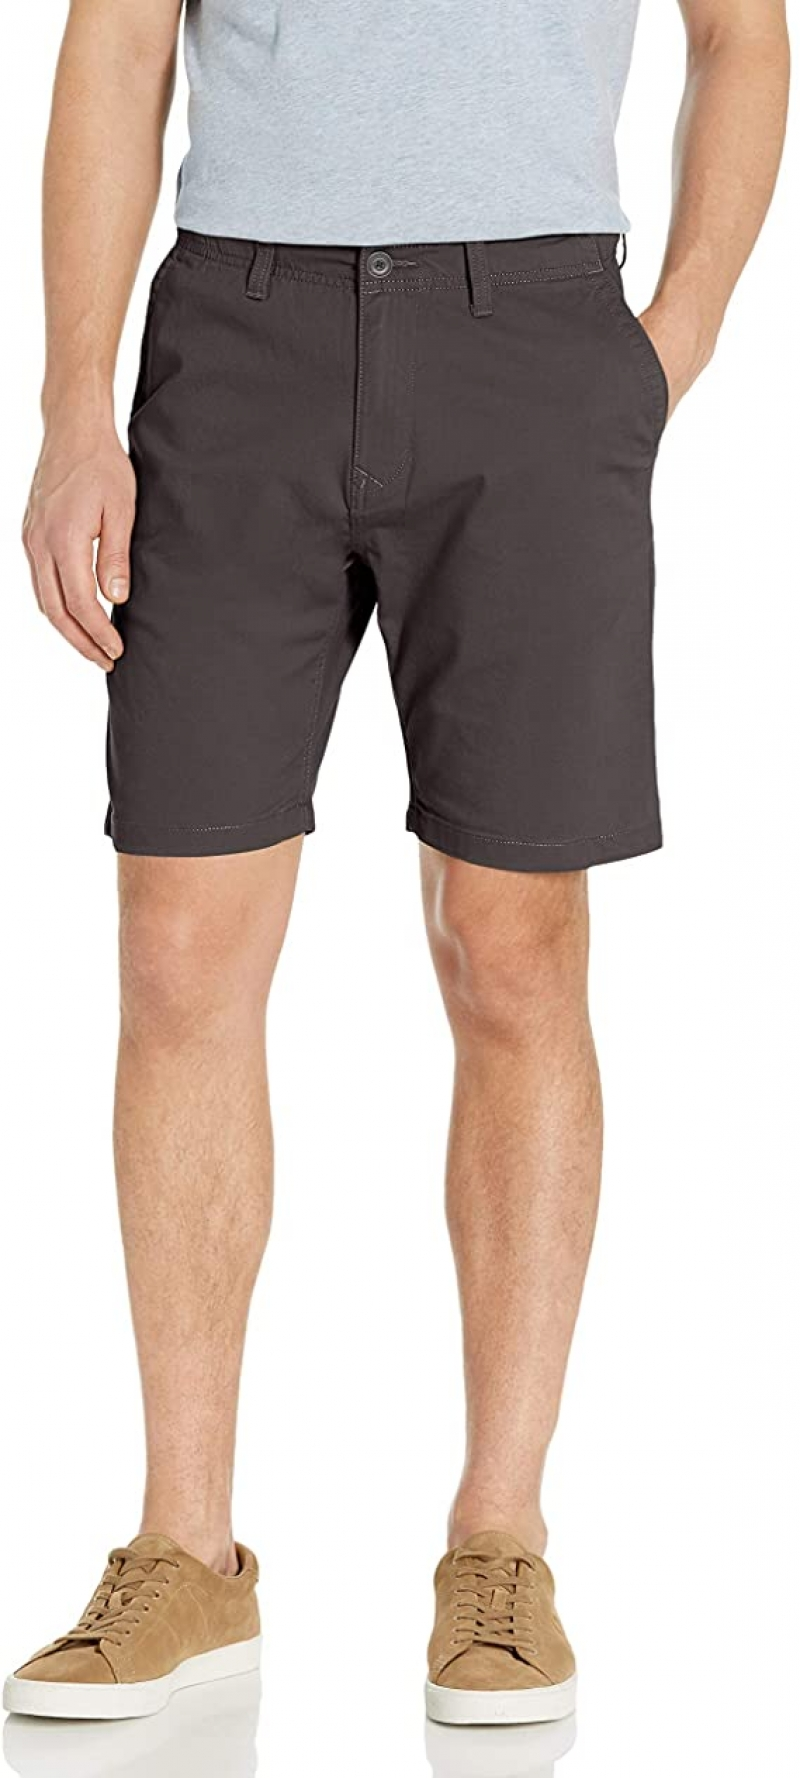 ihocon: Lucky Brand Men's Flat Front Shorts 男士短褲